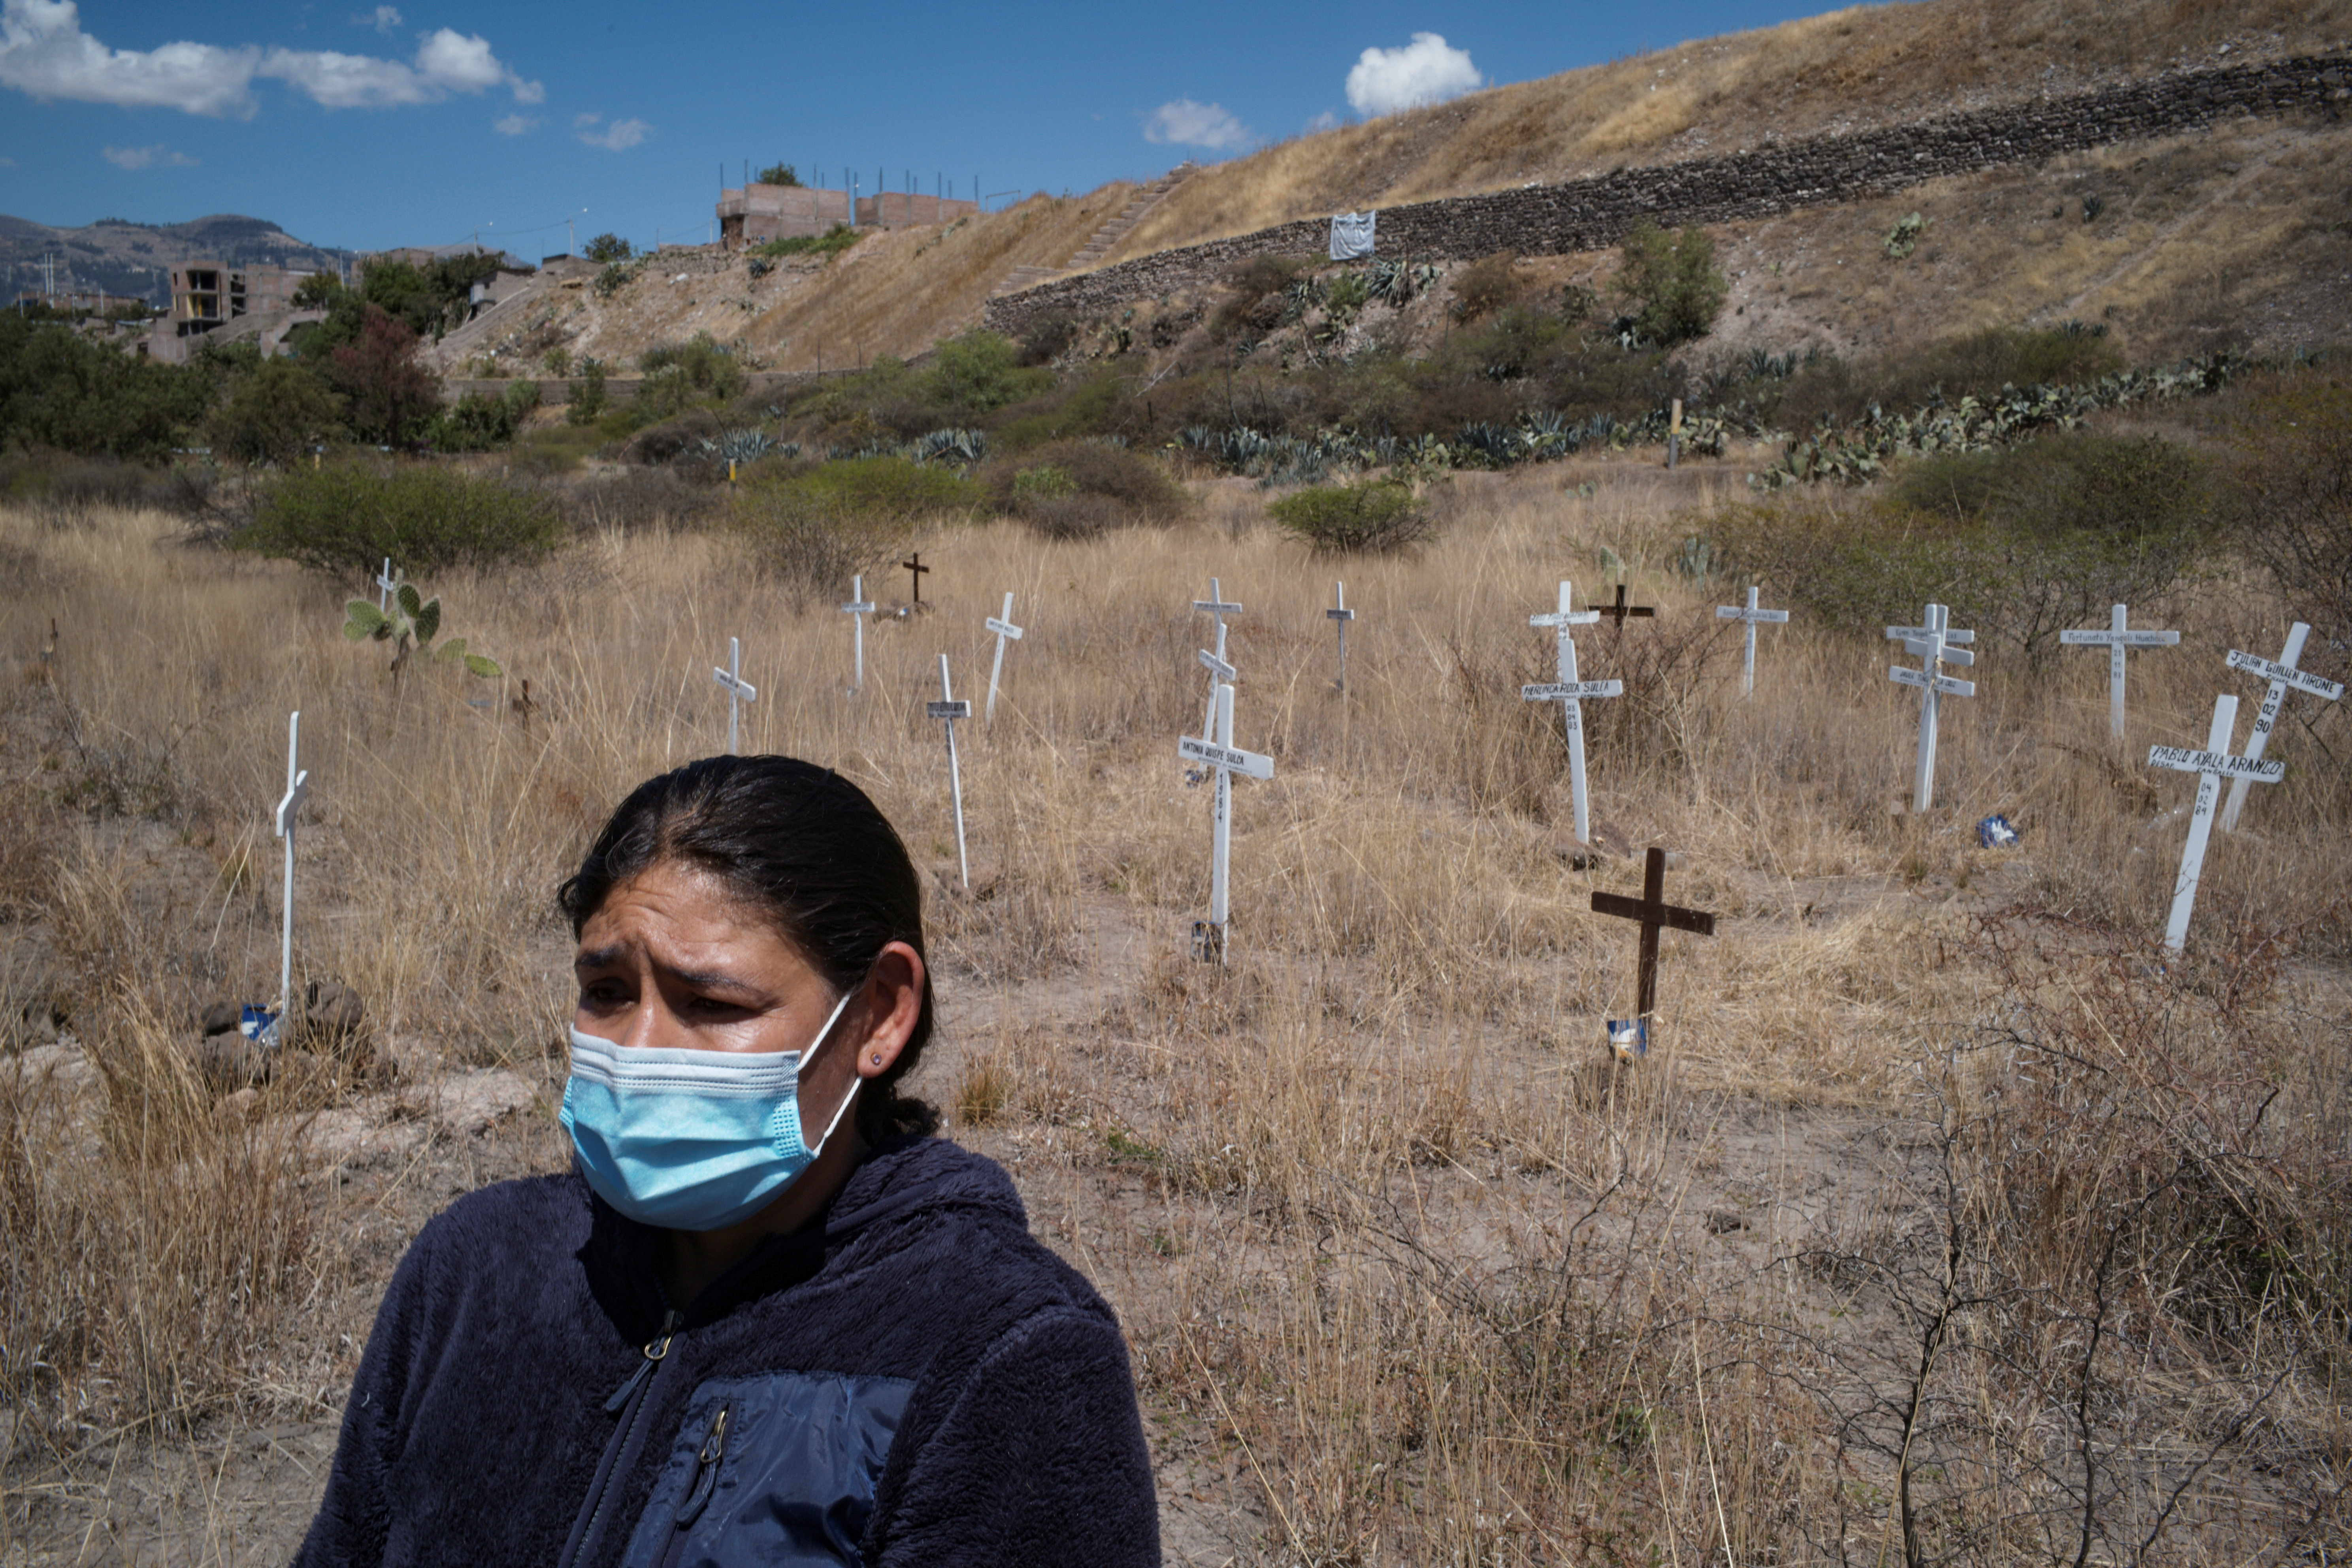 A caretaker stands in front of crosses for people who disappeared during the era of Shining Path, the Peruvian guerrilla group whose founder Abimael Guzman recently died, at the memorial site La Hoyada, in Ayacucho, Peru September 14, 2021. REUTERS/Alessandro Cinque